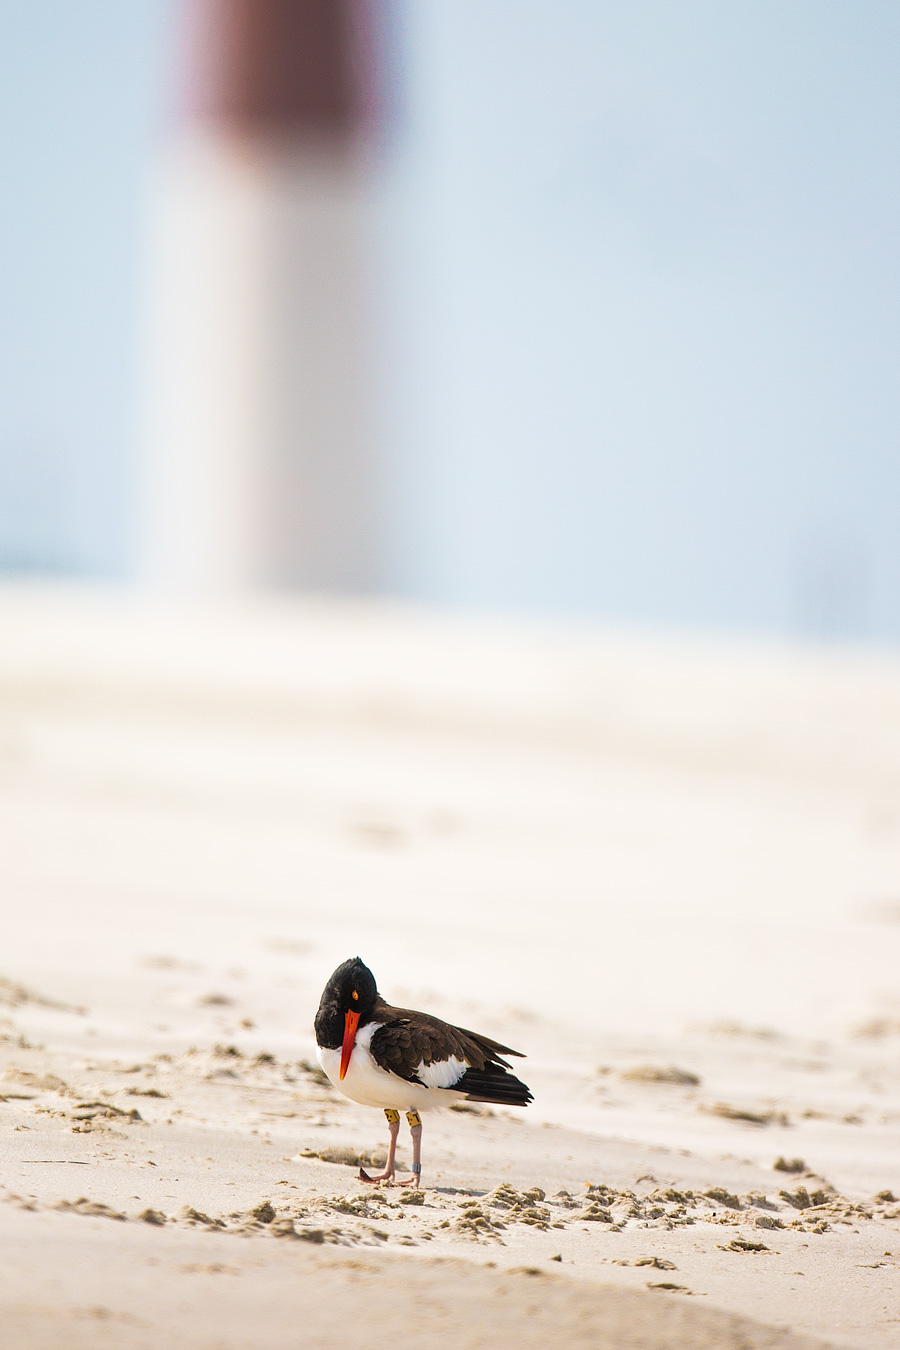 T2 is Barnegat Light's most famous Oystercatcher, and possibly LBI's most photographed bird. You can even Google him. He is that world famous.